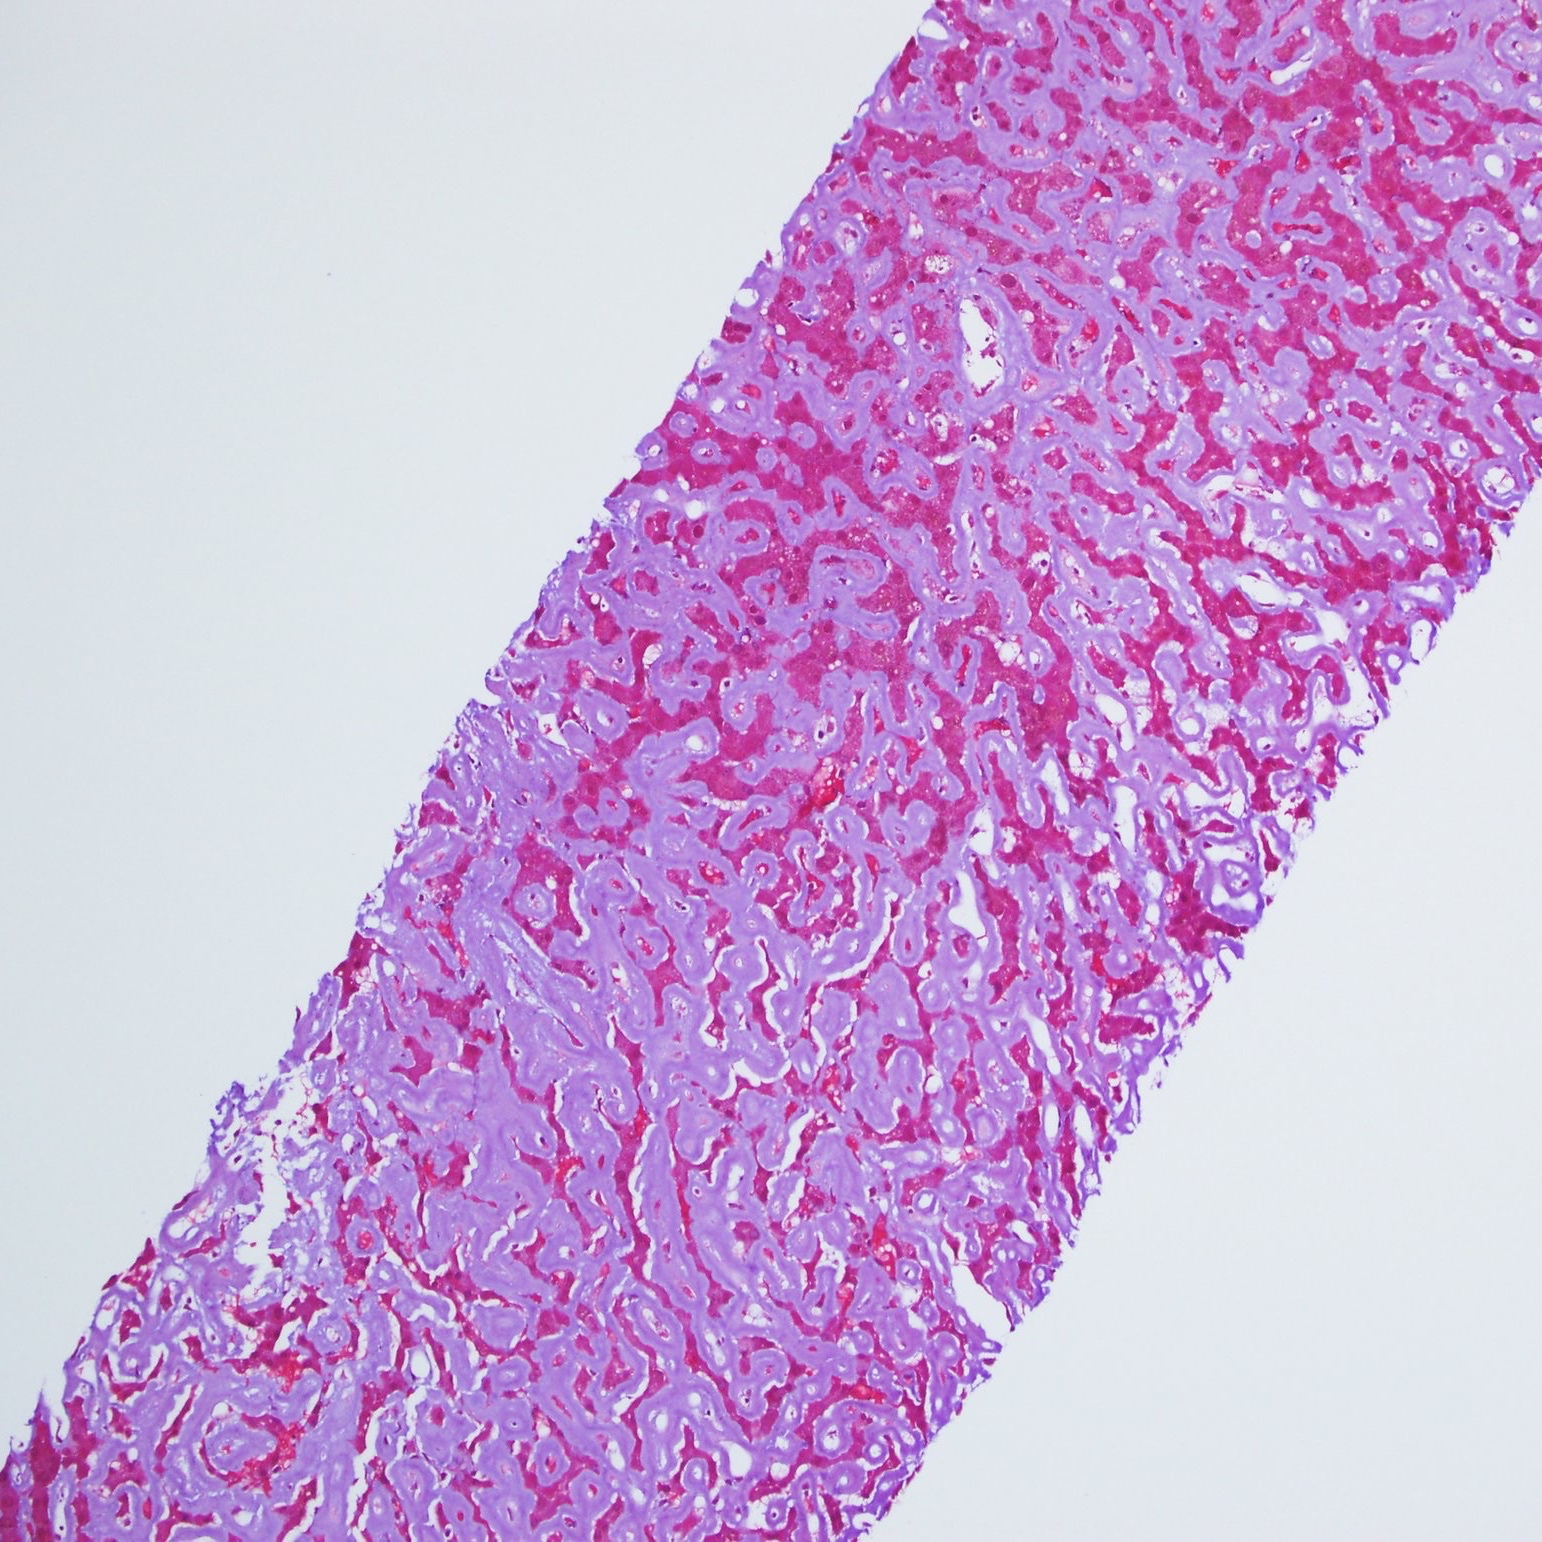 Liver Biopsy: Amyloid diffuse